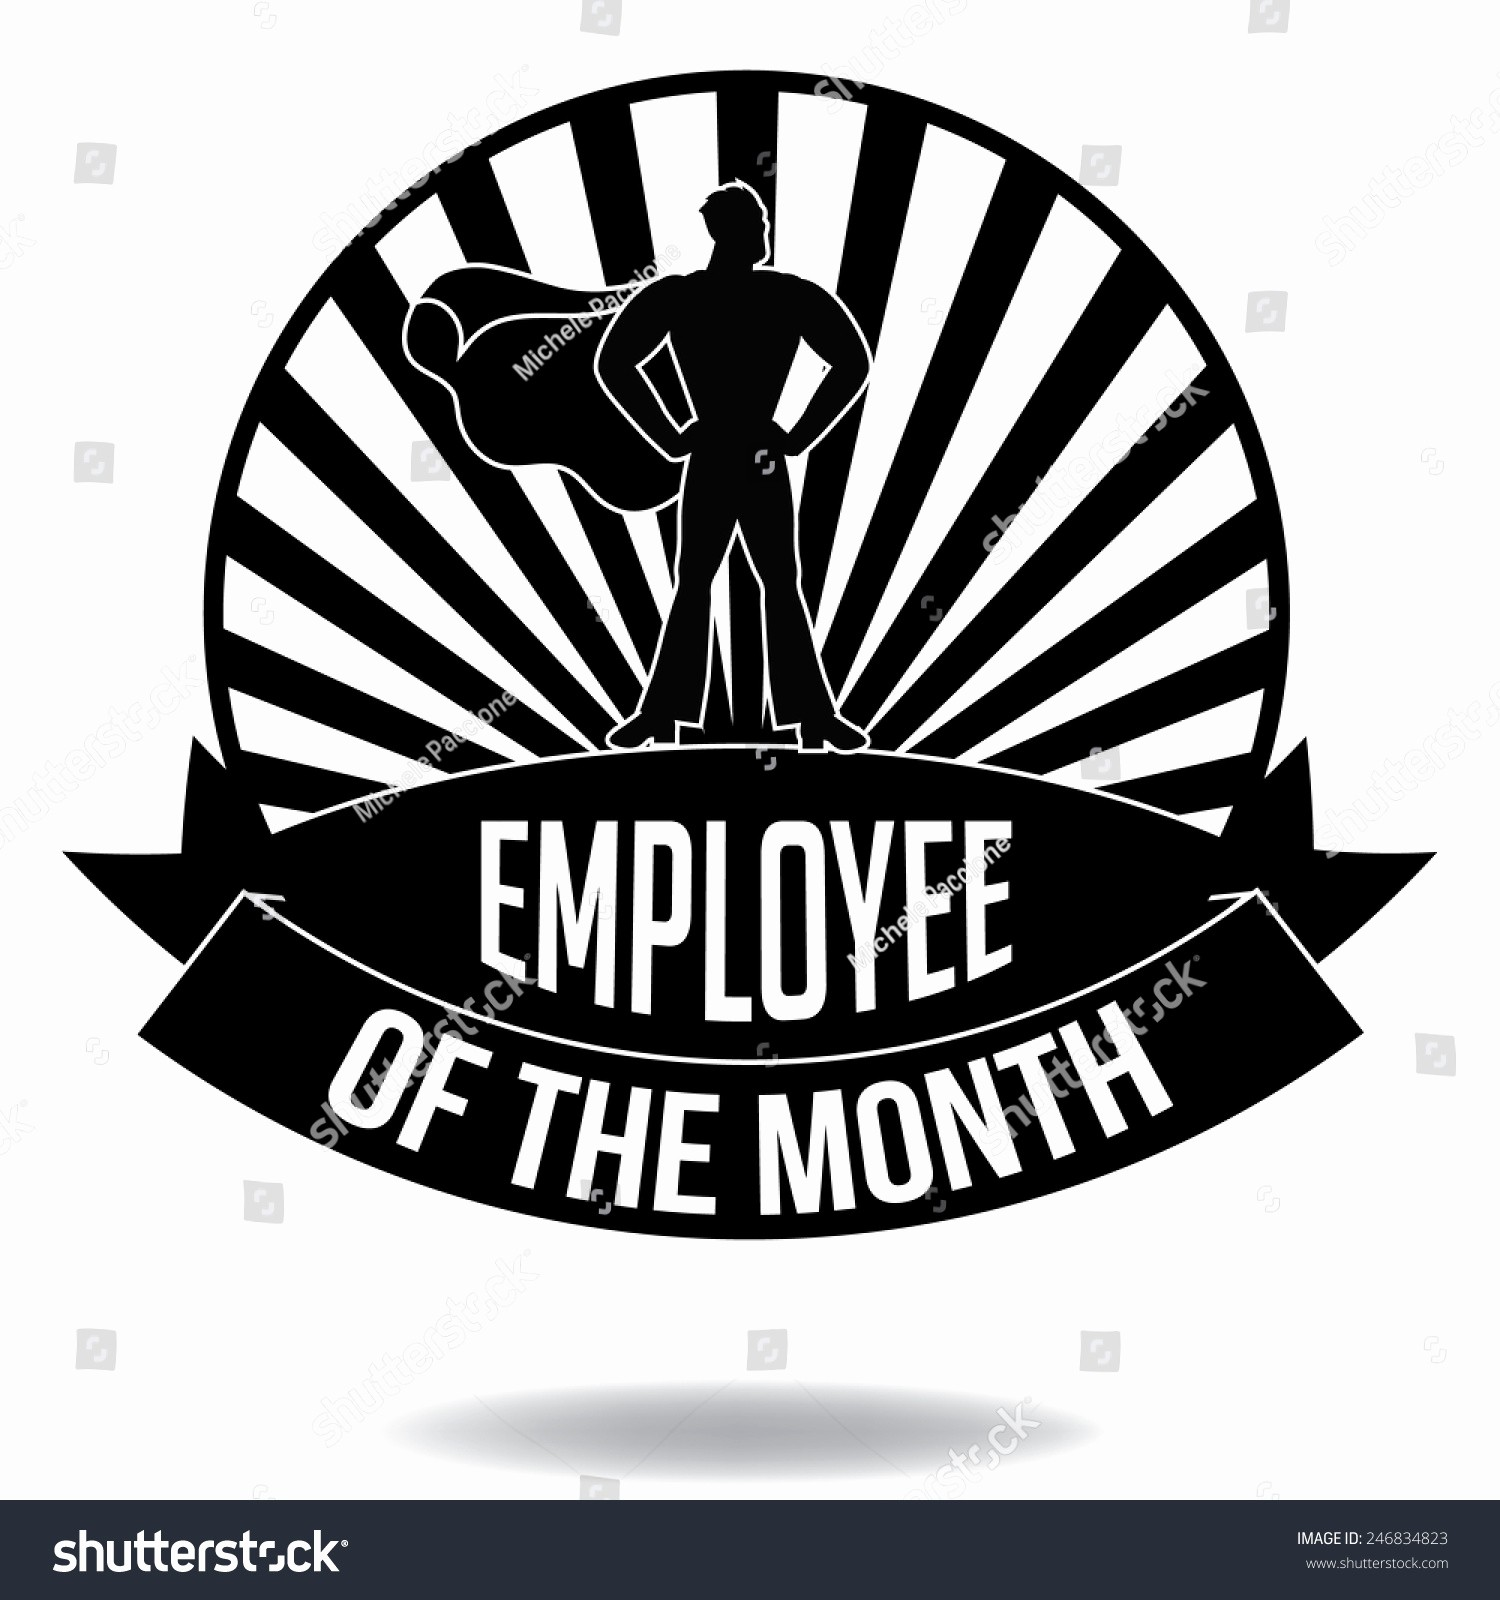 Employee Of the Month Free Elegant Employee the Month Burst Icon Eps 10 Vector Royalty